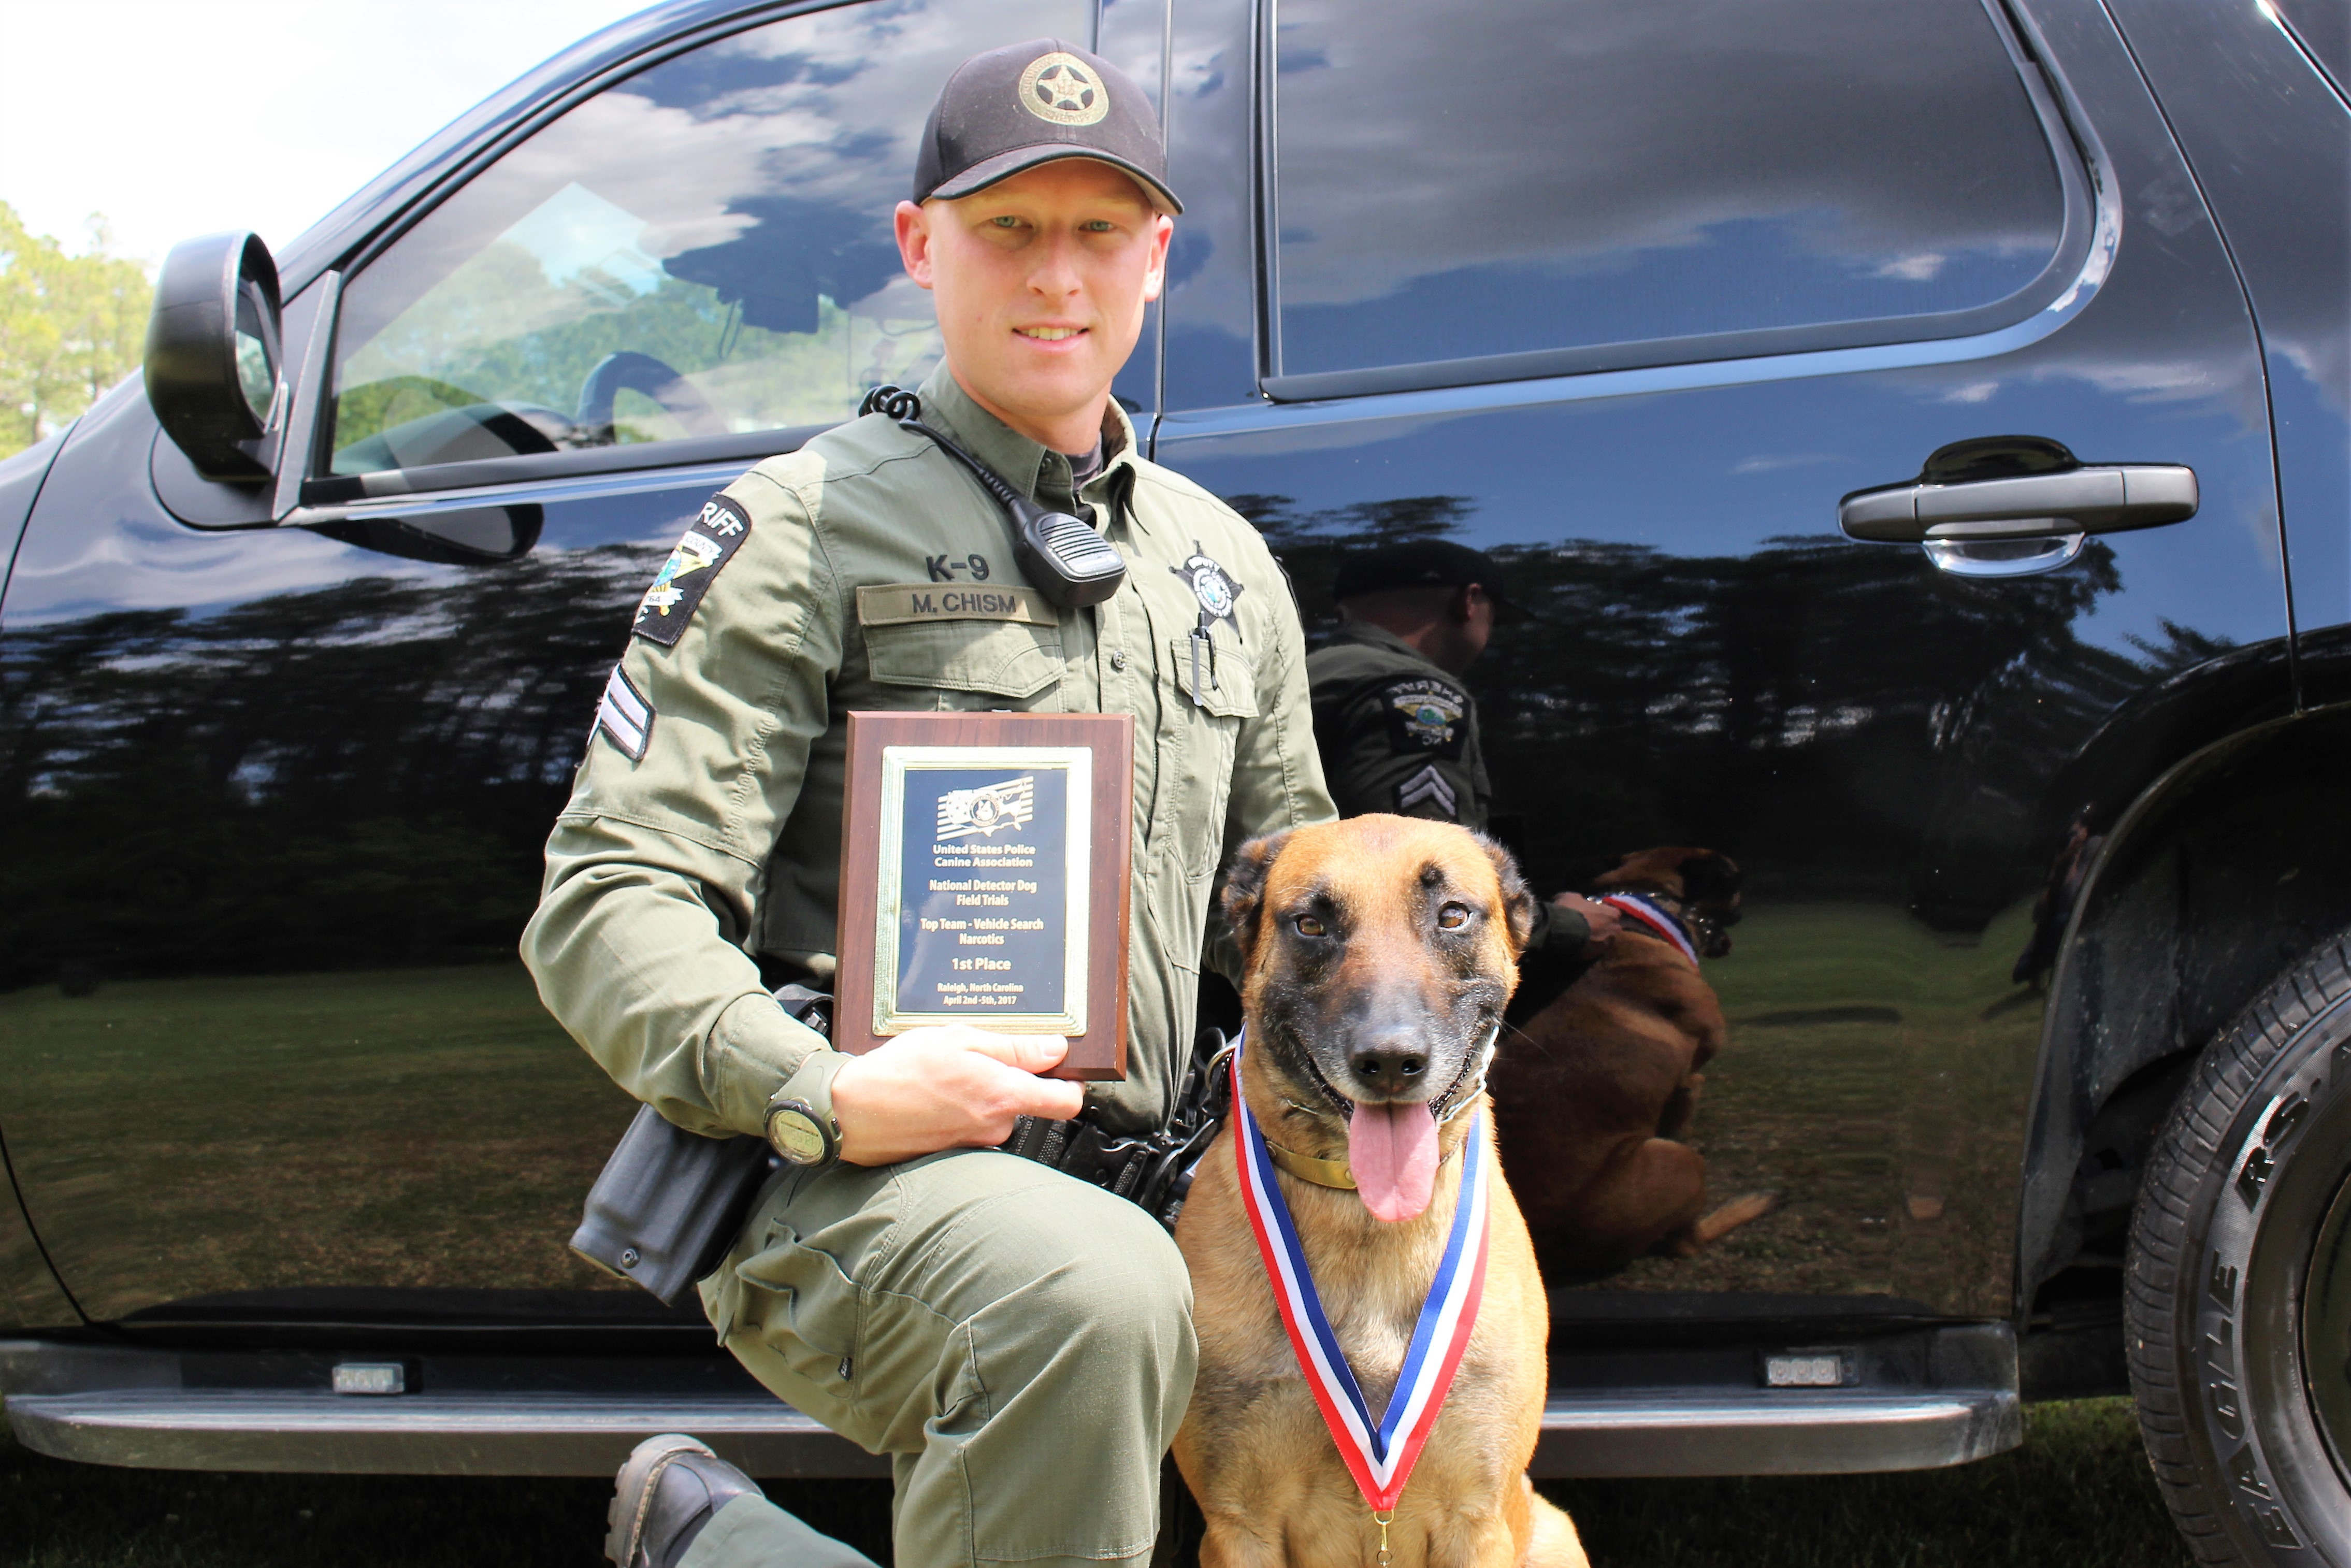 Cpl. Matt Chism and his 7-year-old Malinois, Ajk, earn a first-place award at a national K9 competition in Raleigh. (Port City Daily photo/CHRISTINA HALEY)